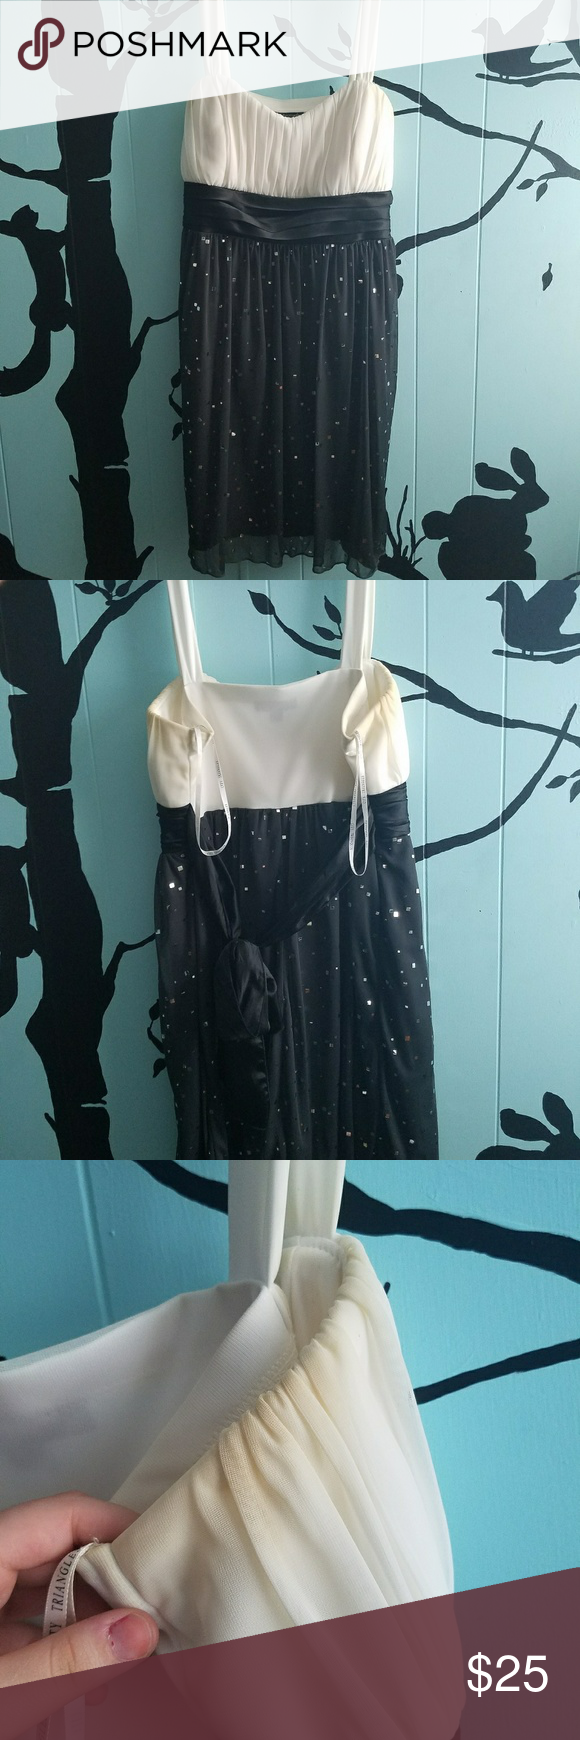 Black and grey strapped formal dress It has sweat stains in the armpit area on both sides of the dress but nothing a good wash or dry cleaner couldn't fix. The dress is on good shape and has no rips in it. The dress goes to about the knee length. City Triangles Dresses Prom